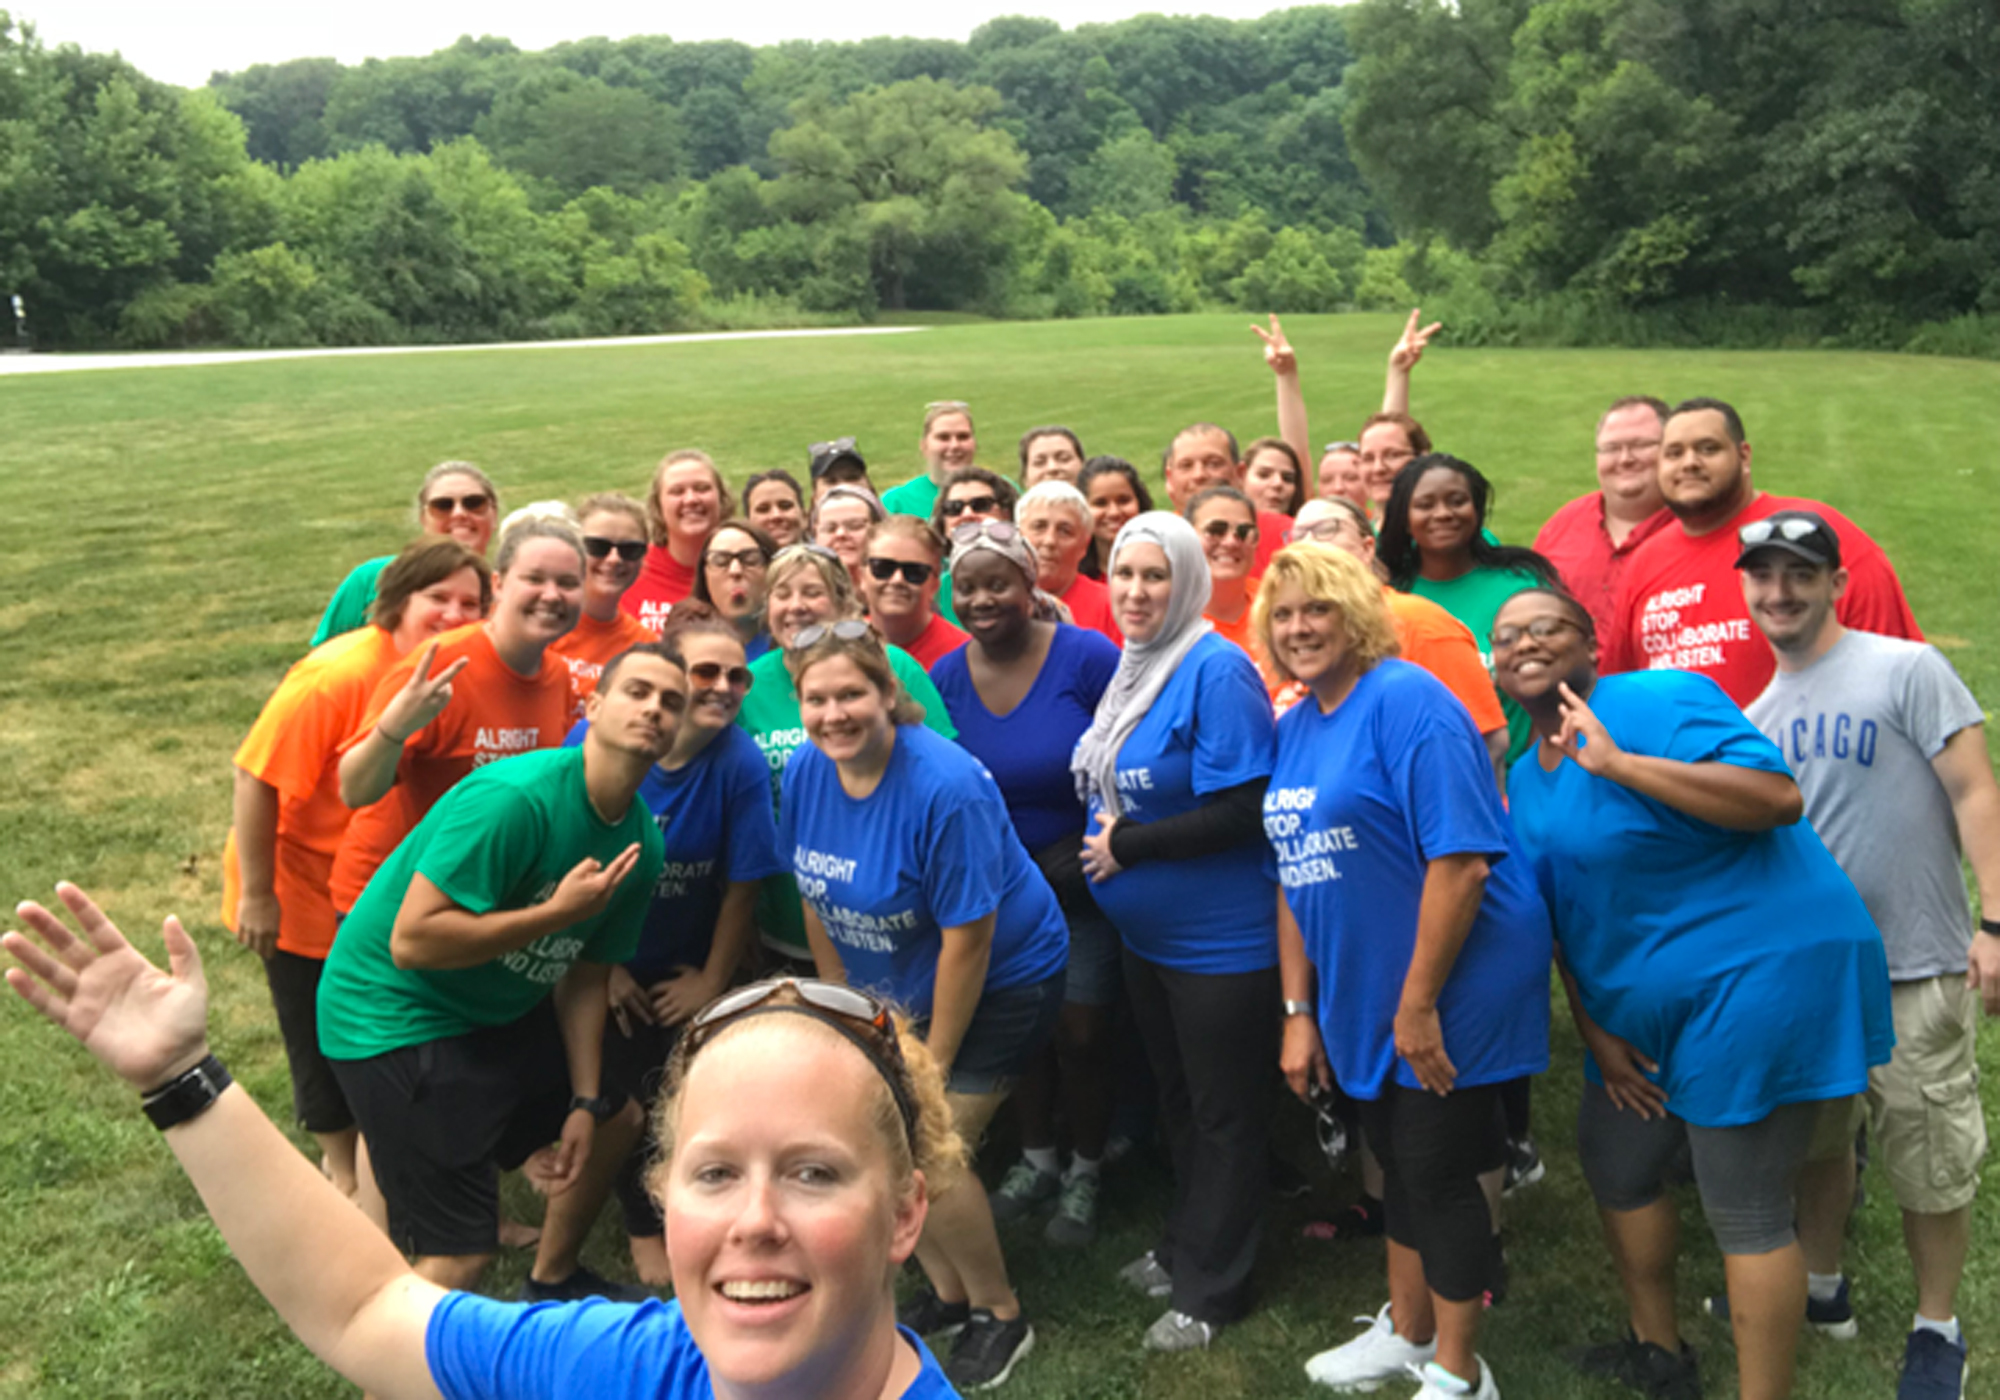 Community Foundation Grant Supports DCS Teambuilding Event